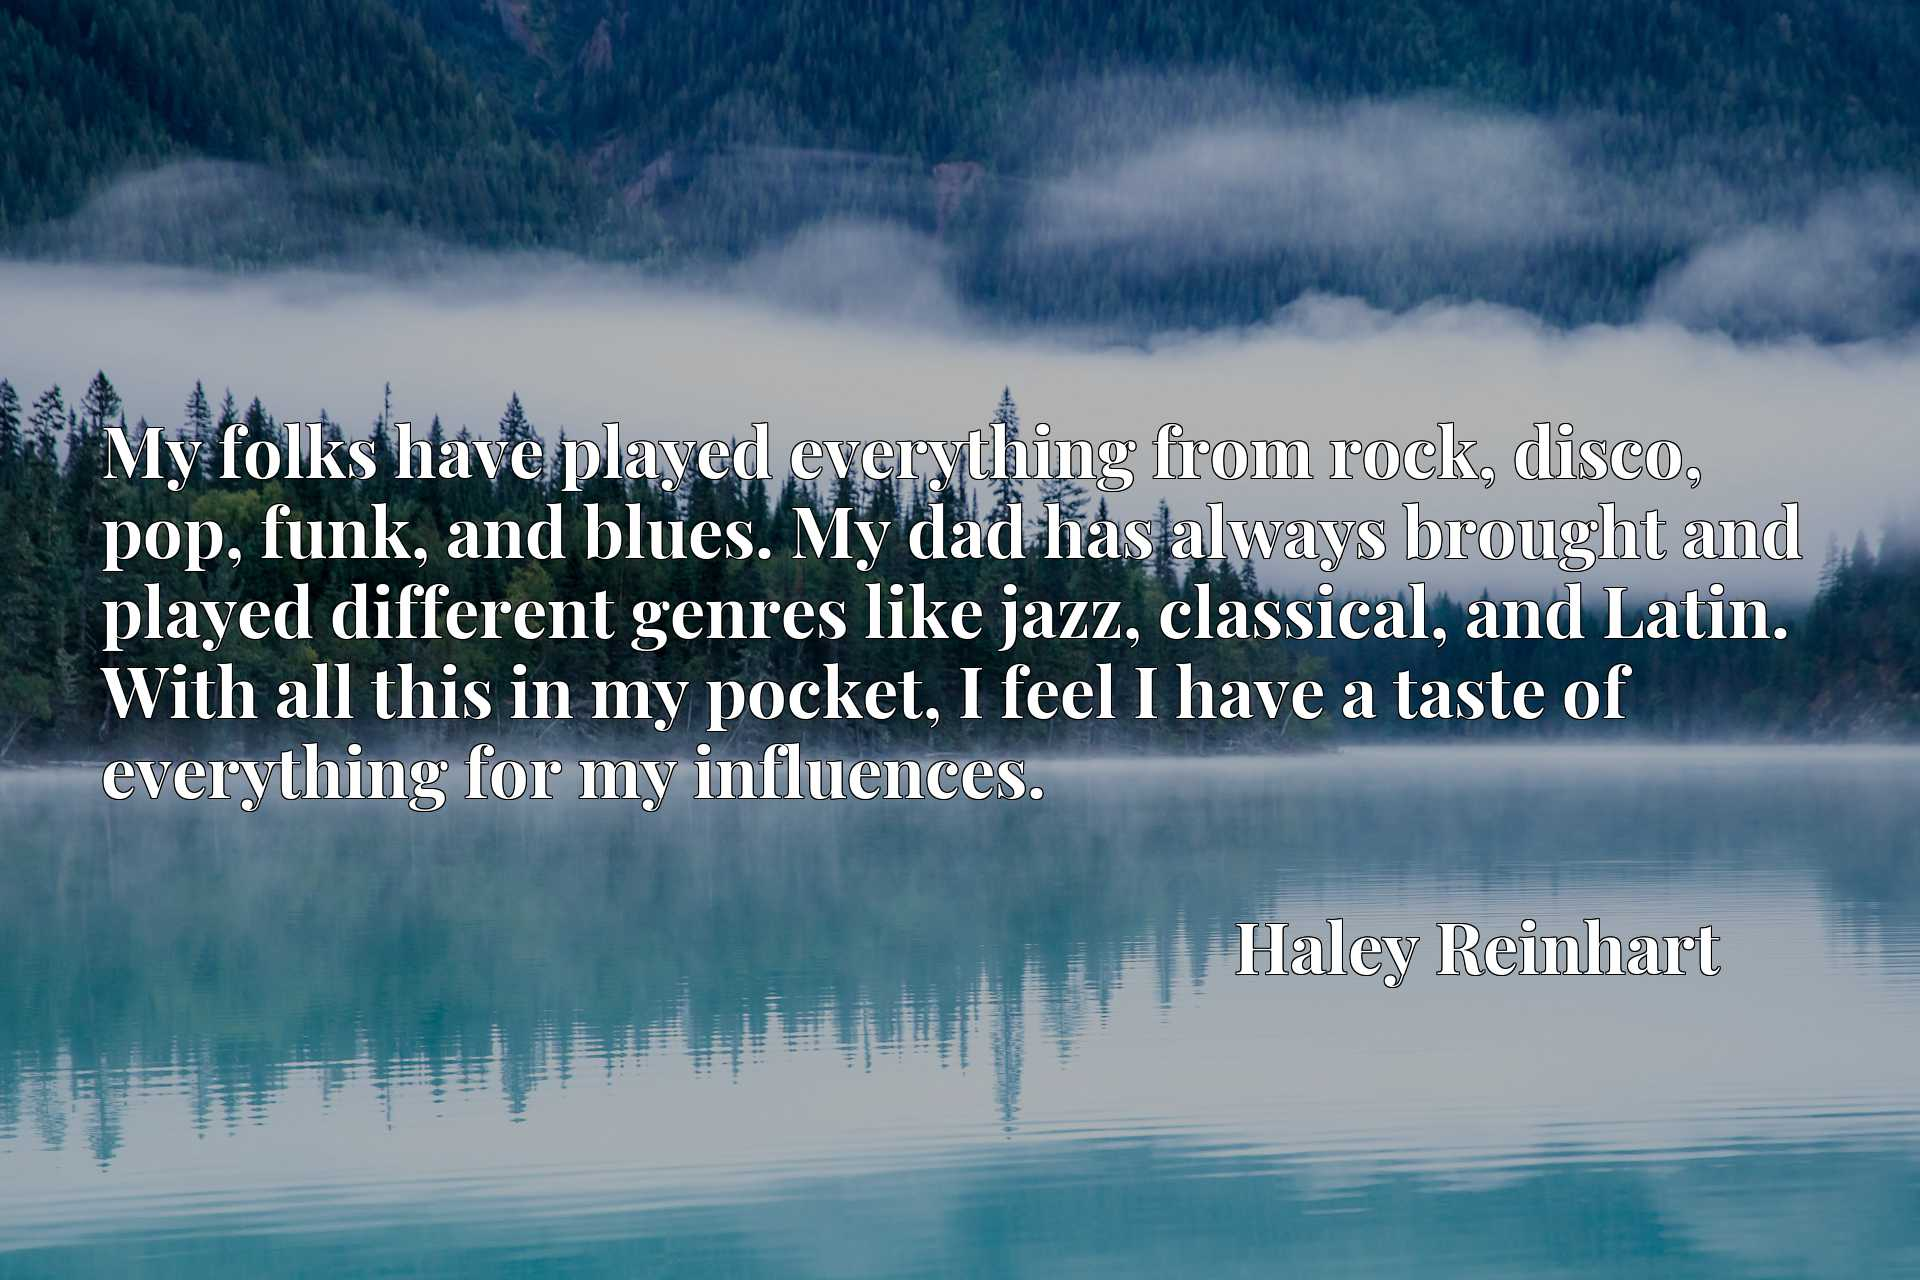 My folks have played everything from rock, disco, pop, funk, and blues. My dad has always brought and played different genres like jazz, classical, and Latin. With all this in my pocket, I feel I have a taste of everything for my influences.